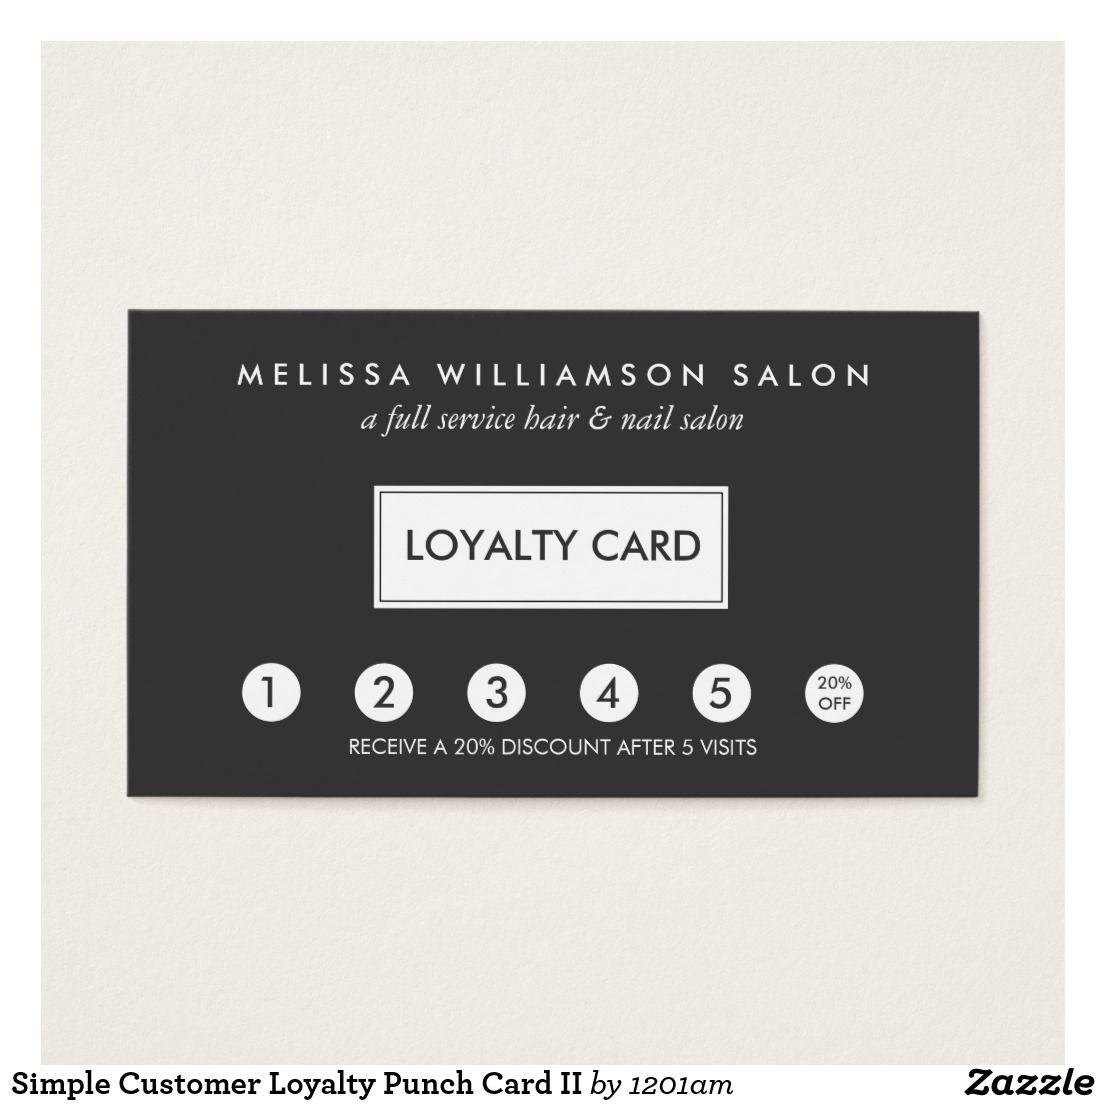 Simple Customer Loyalty Punch Card II   Business Cards: Loyalty ...